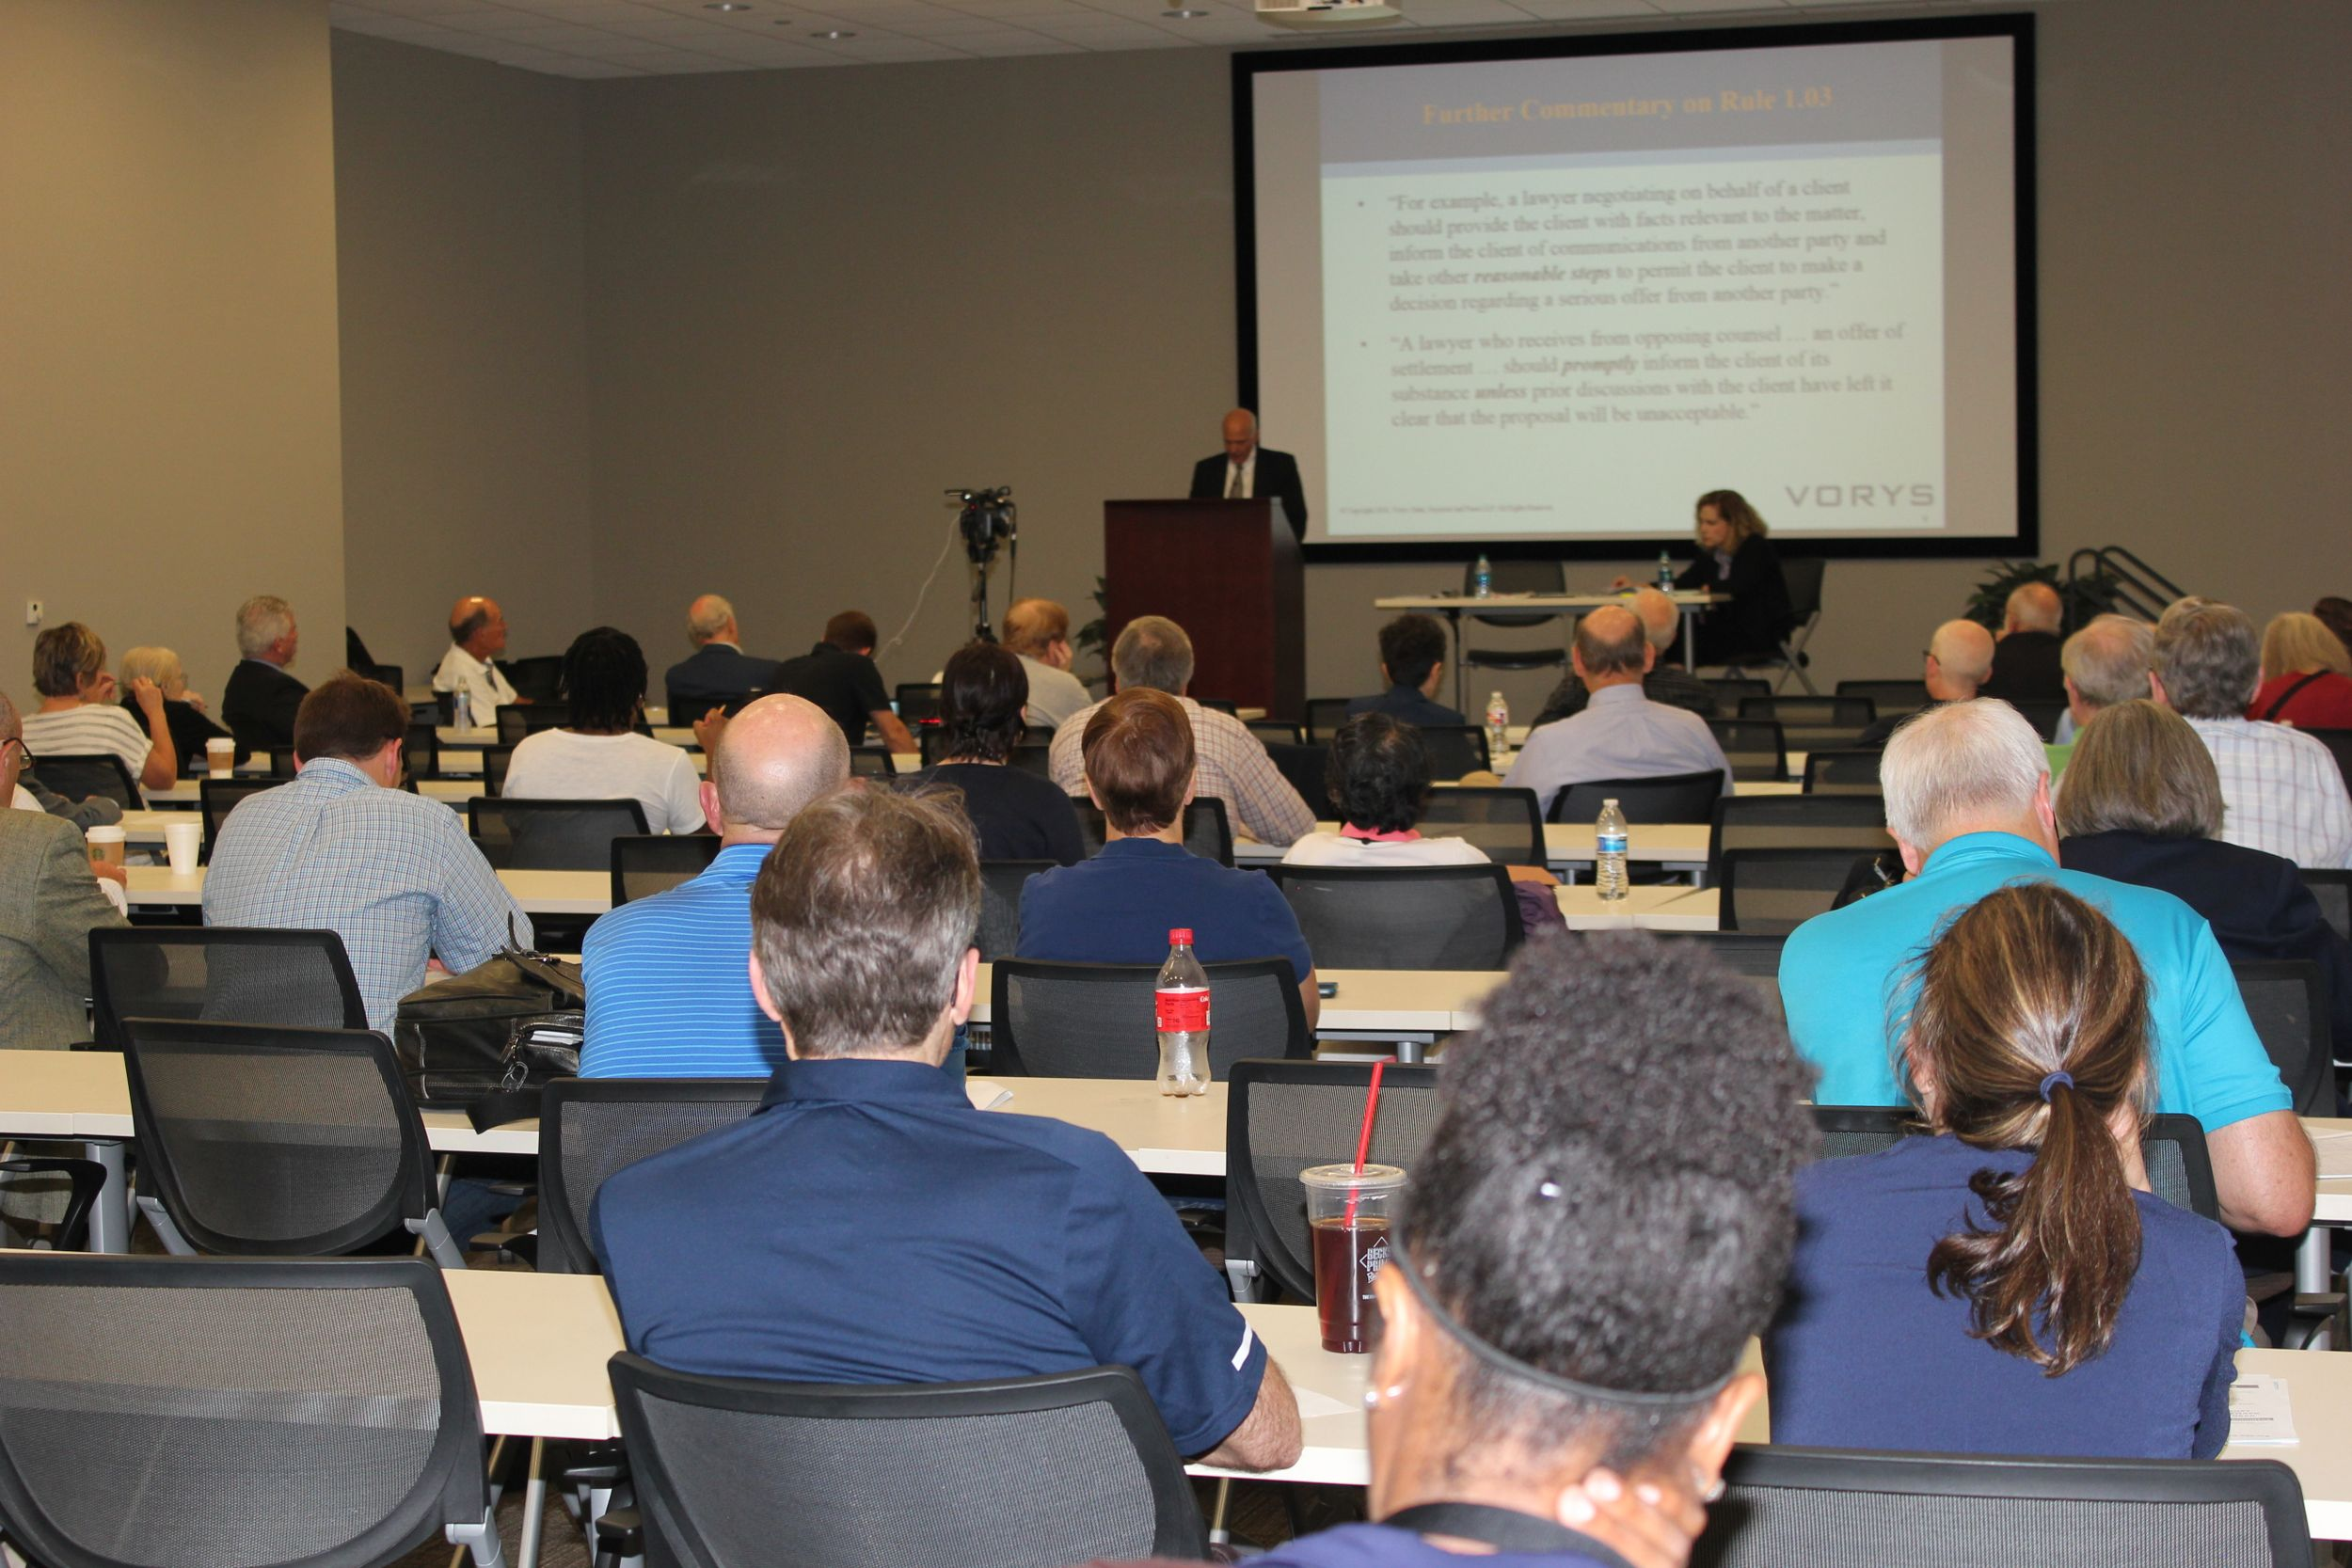 Several attorneys attend an HBA CLE seminar at Heritage Plaza.